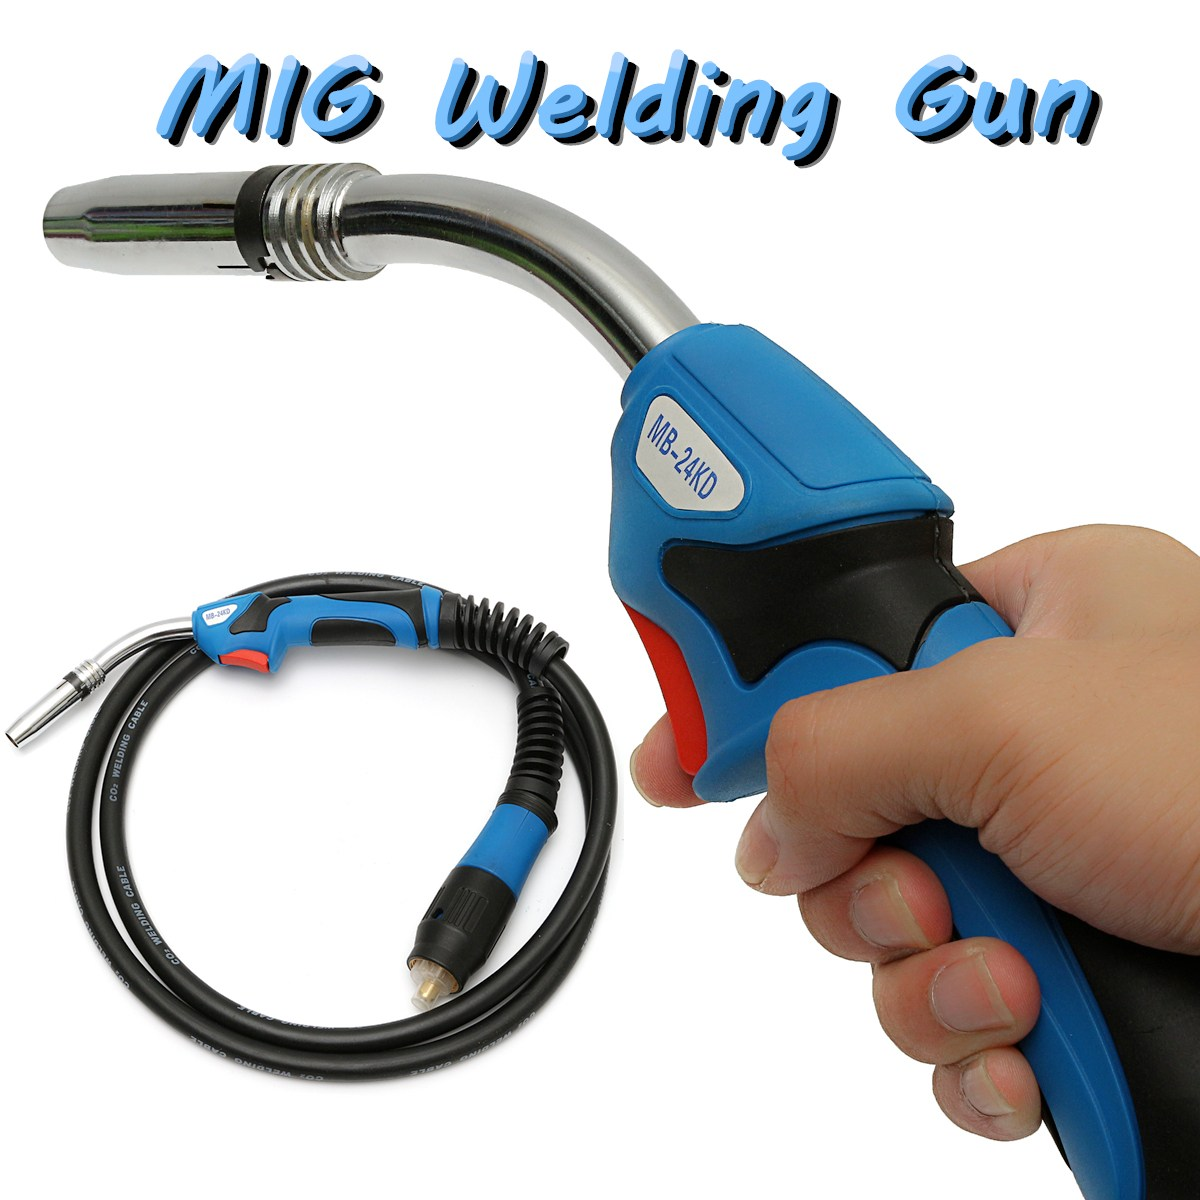 MB24 MIG Welding-Gun Torch 250 Amp with 10ft/ 3 Meter Lead Binzel Style Euro Adapter купить